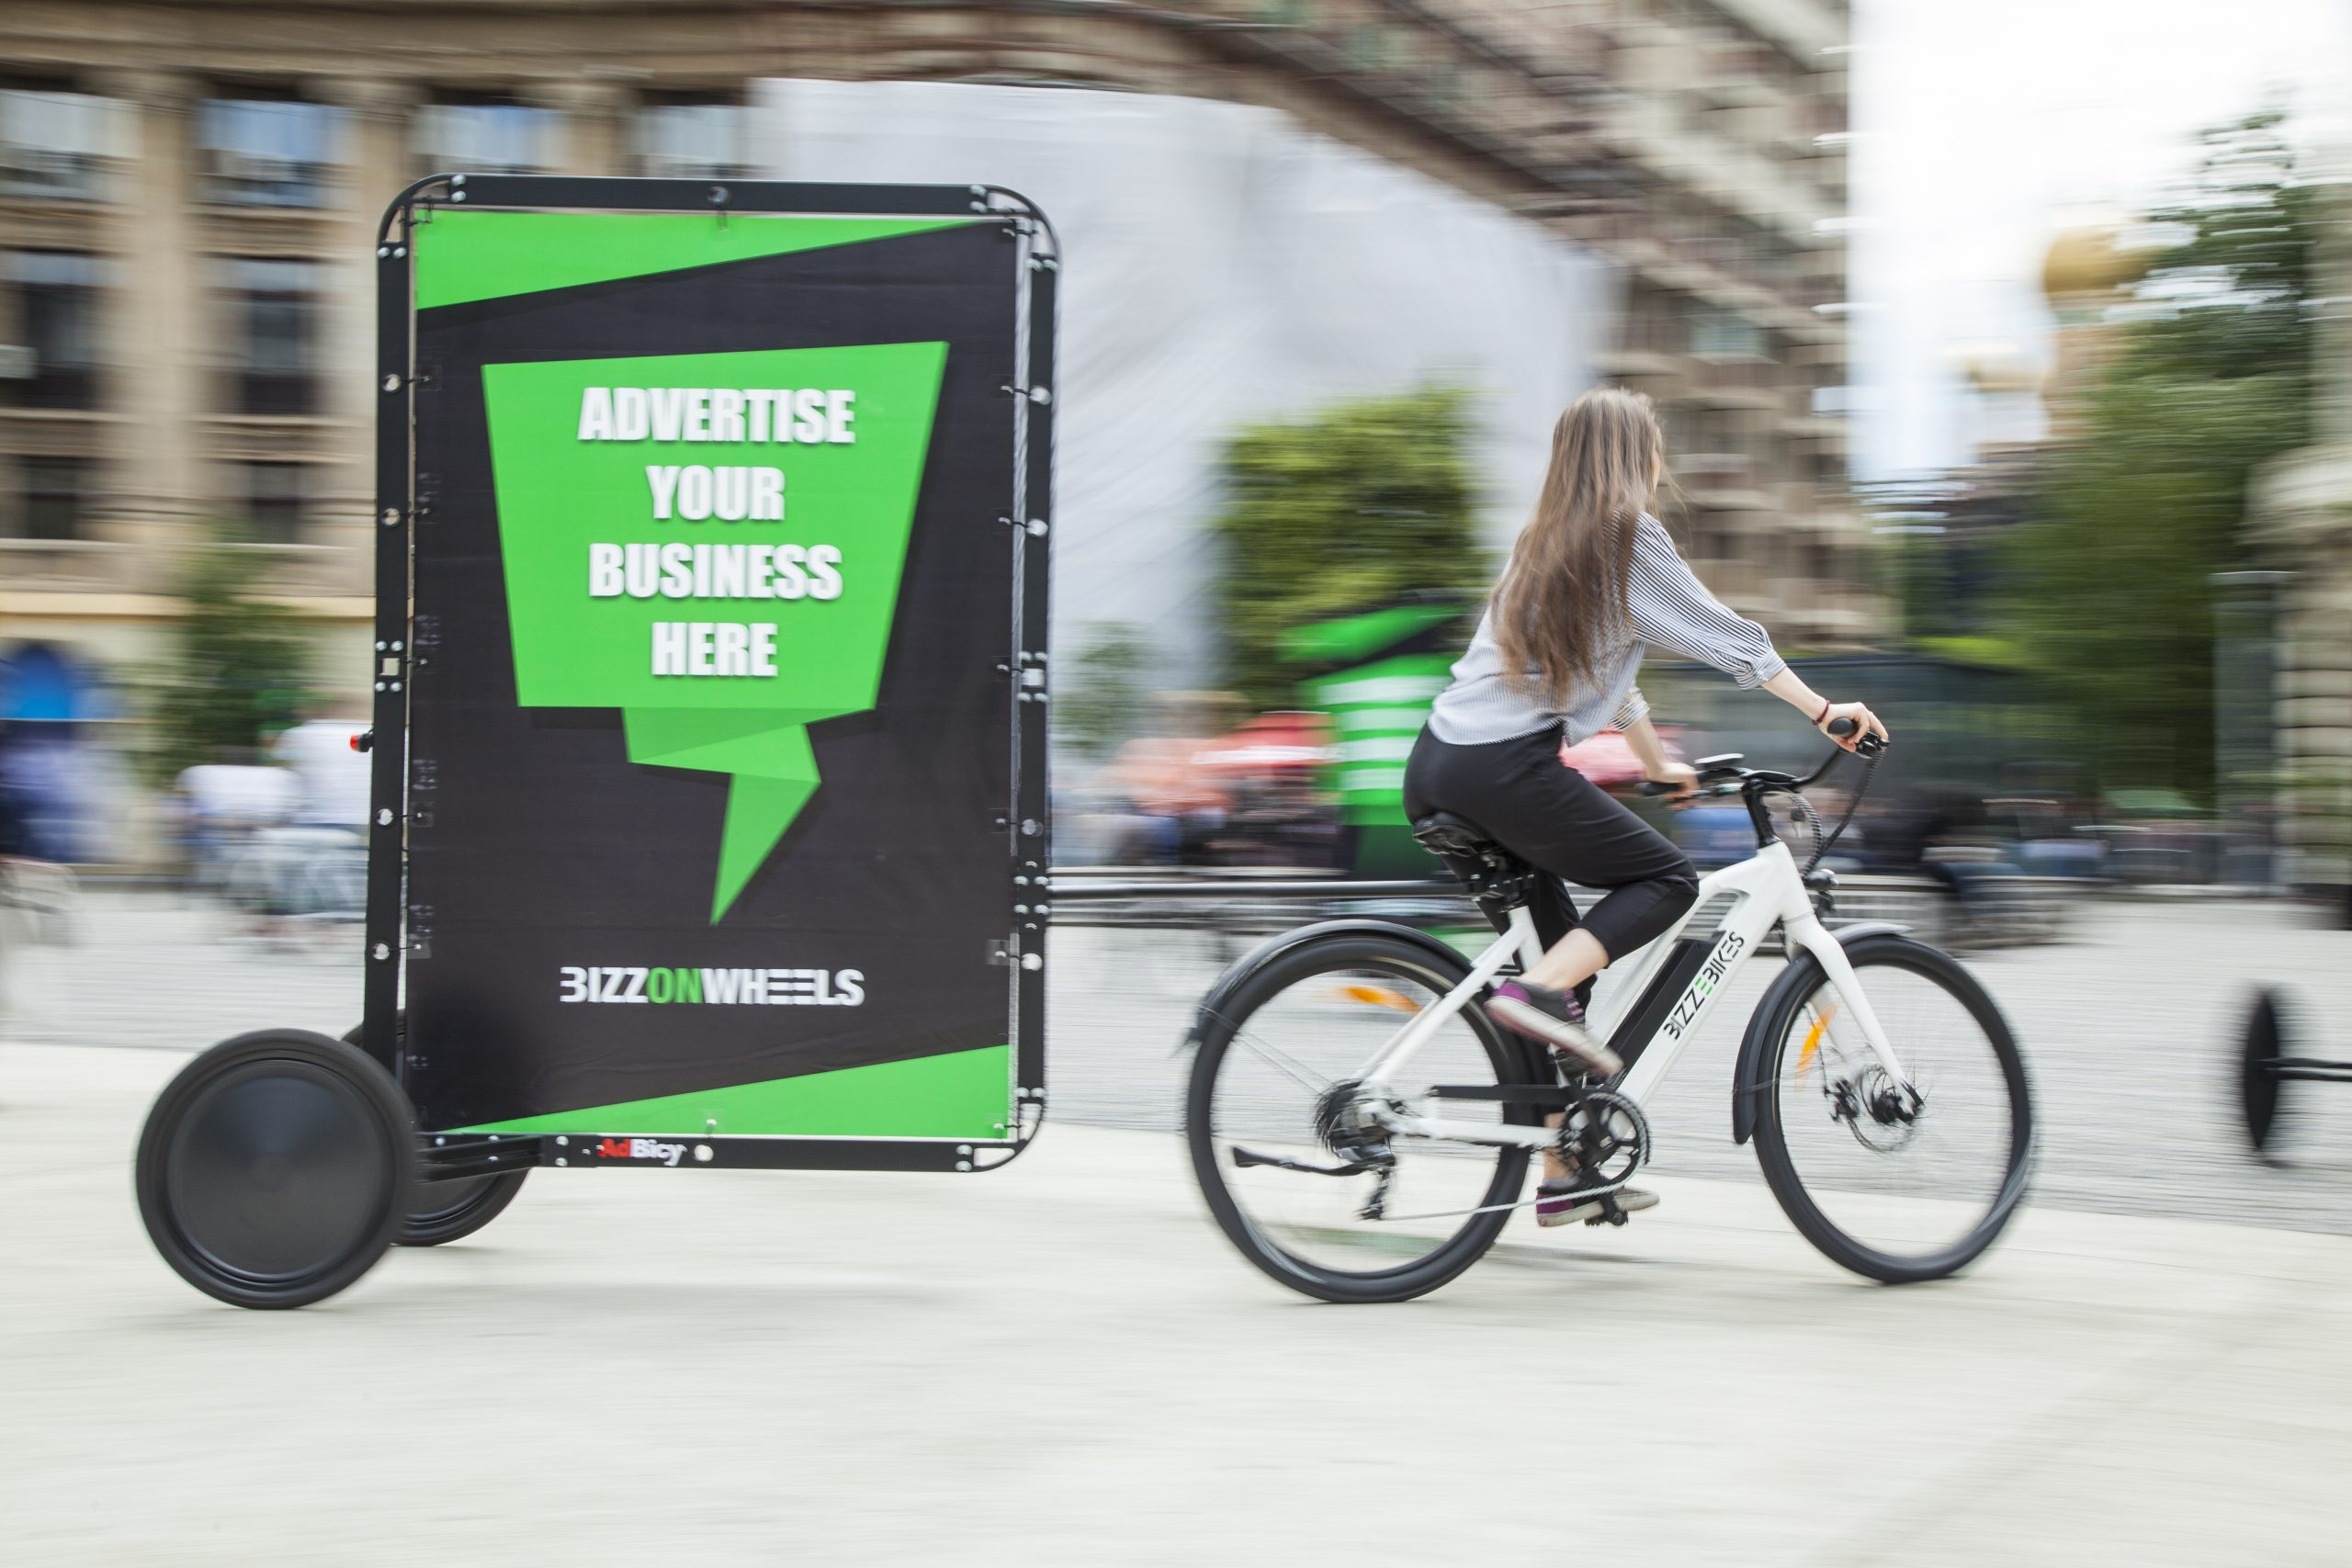 Unconventional cycling campaigns